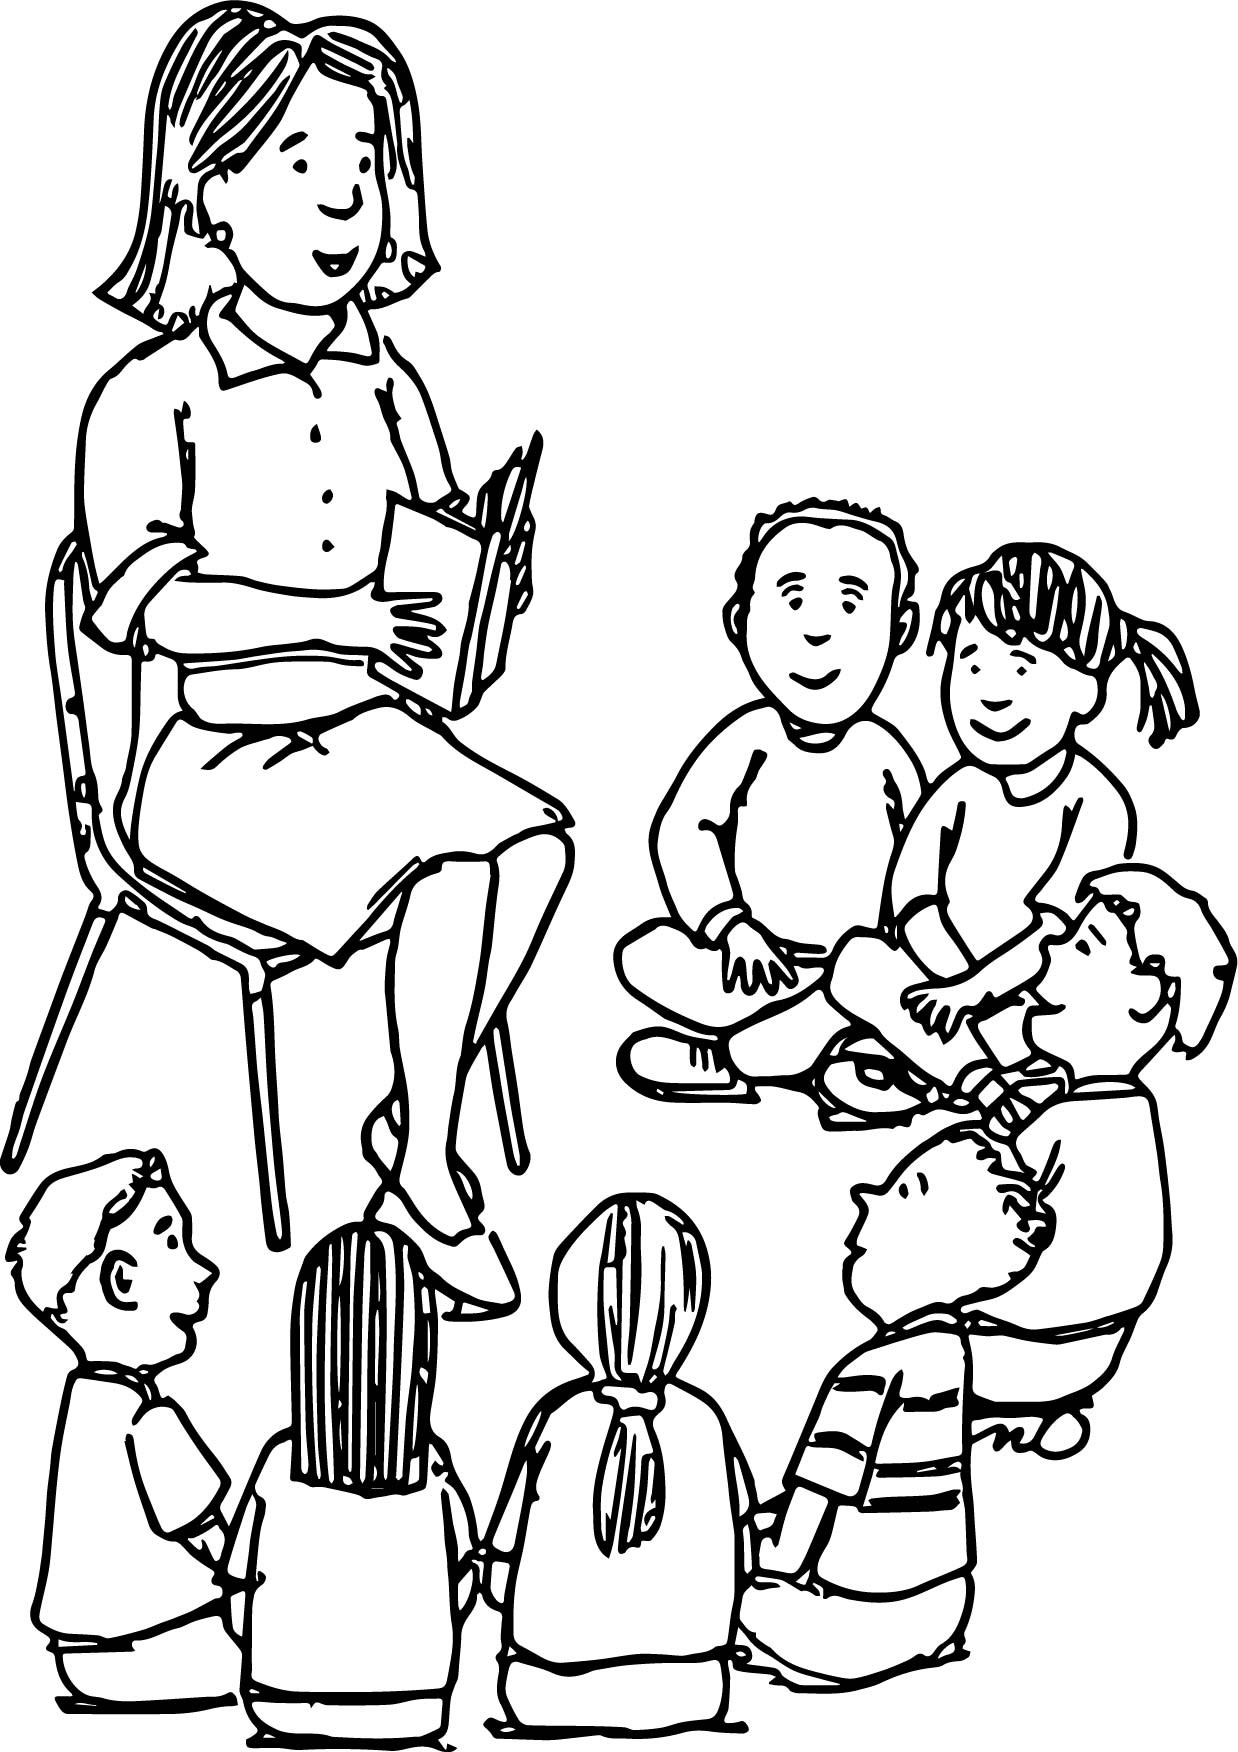 Kids Coloring Picture  Teacher Coloring Pages Best Coloring Pages For Kids